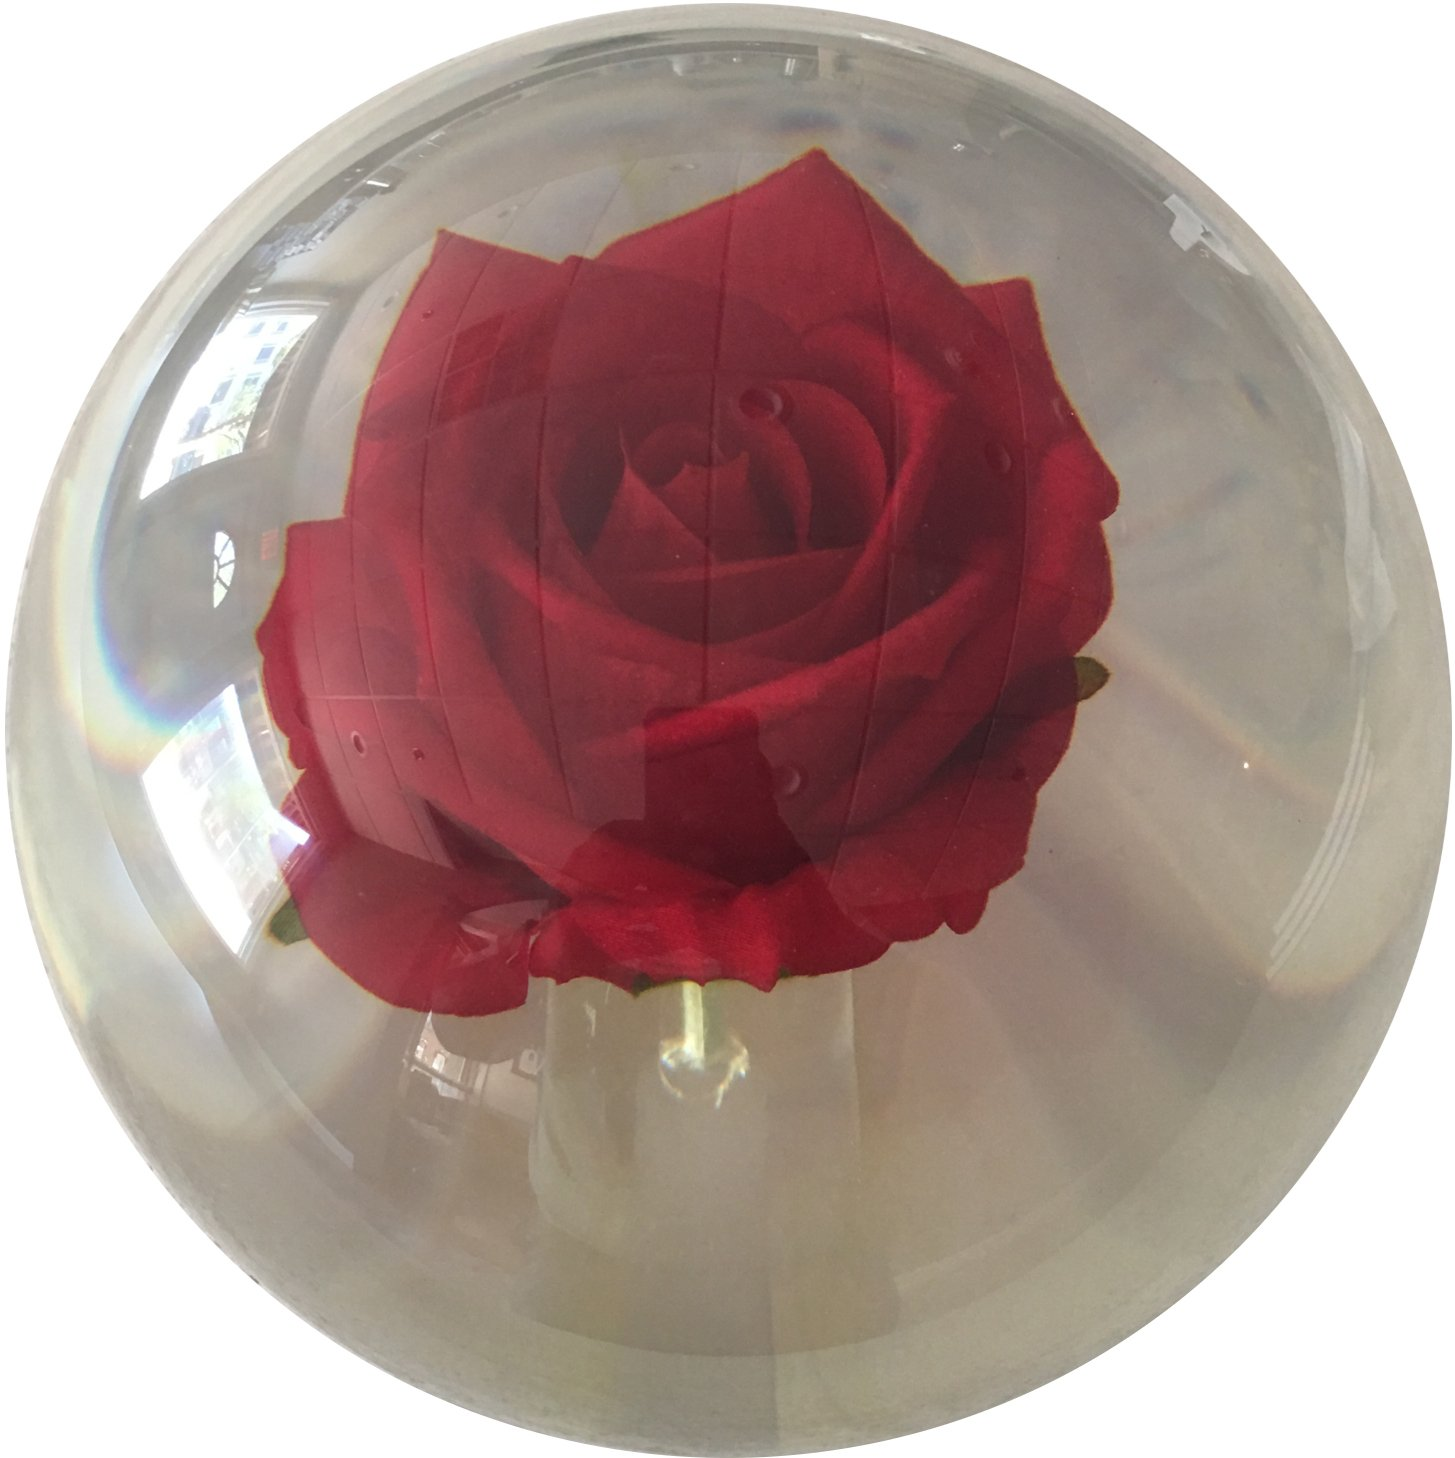 KR Clear Red Rose Bowling Ball 14lbs